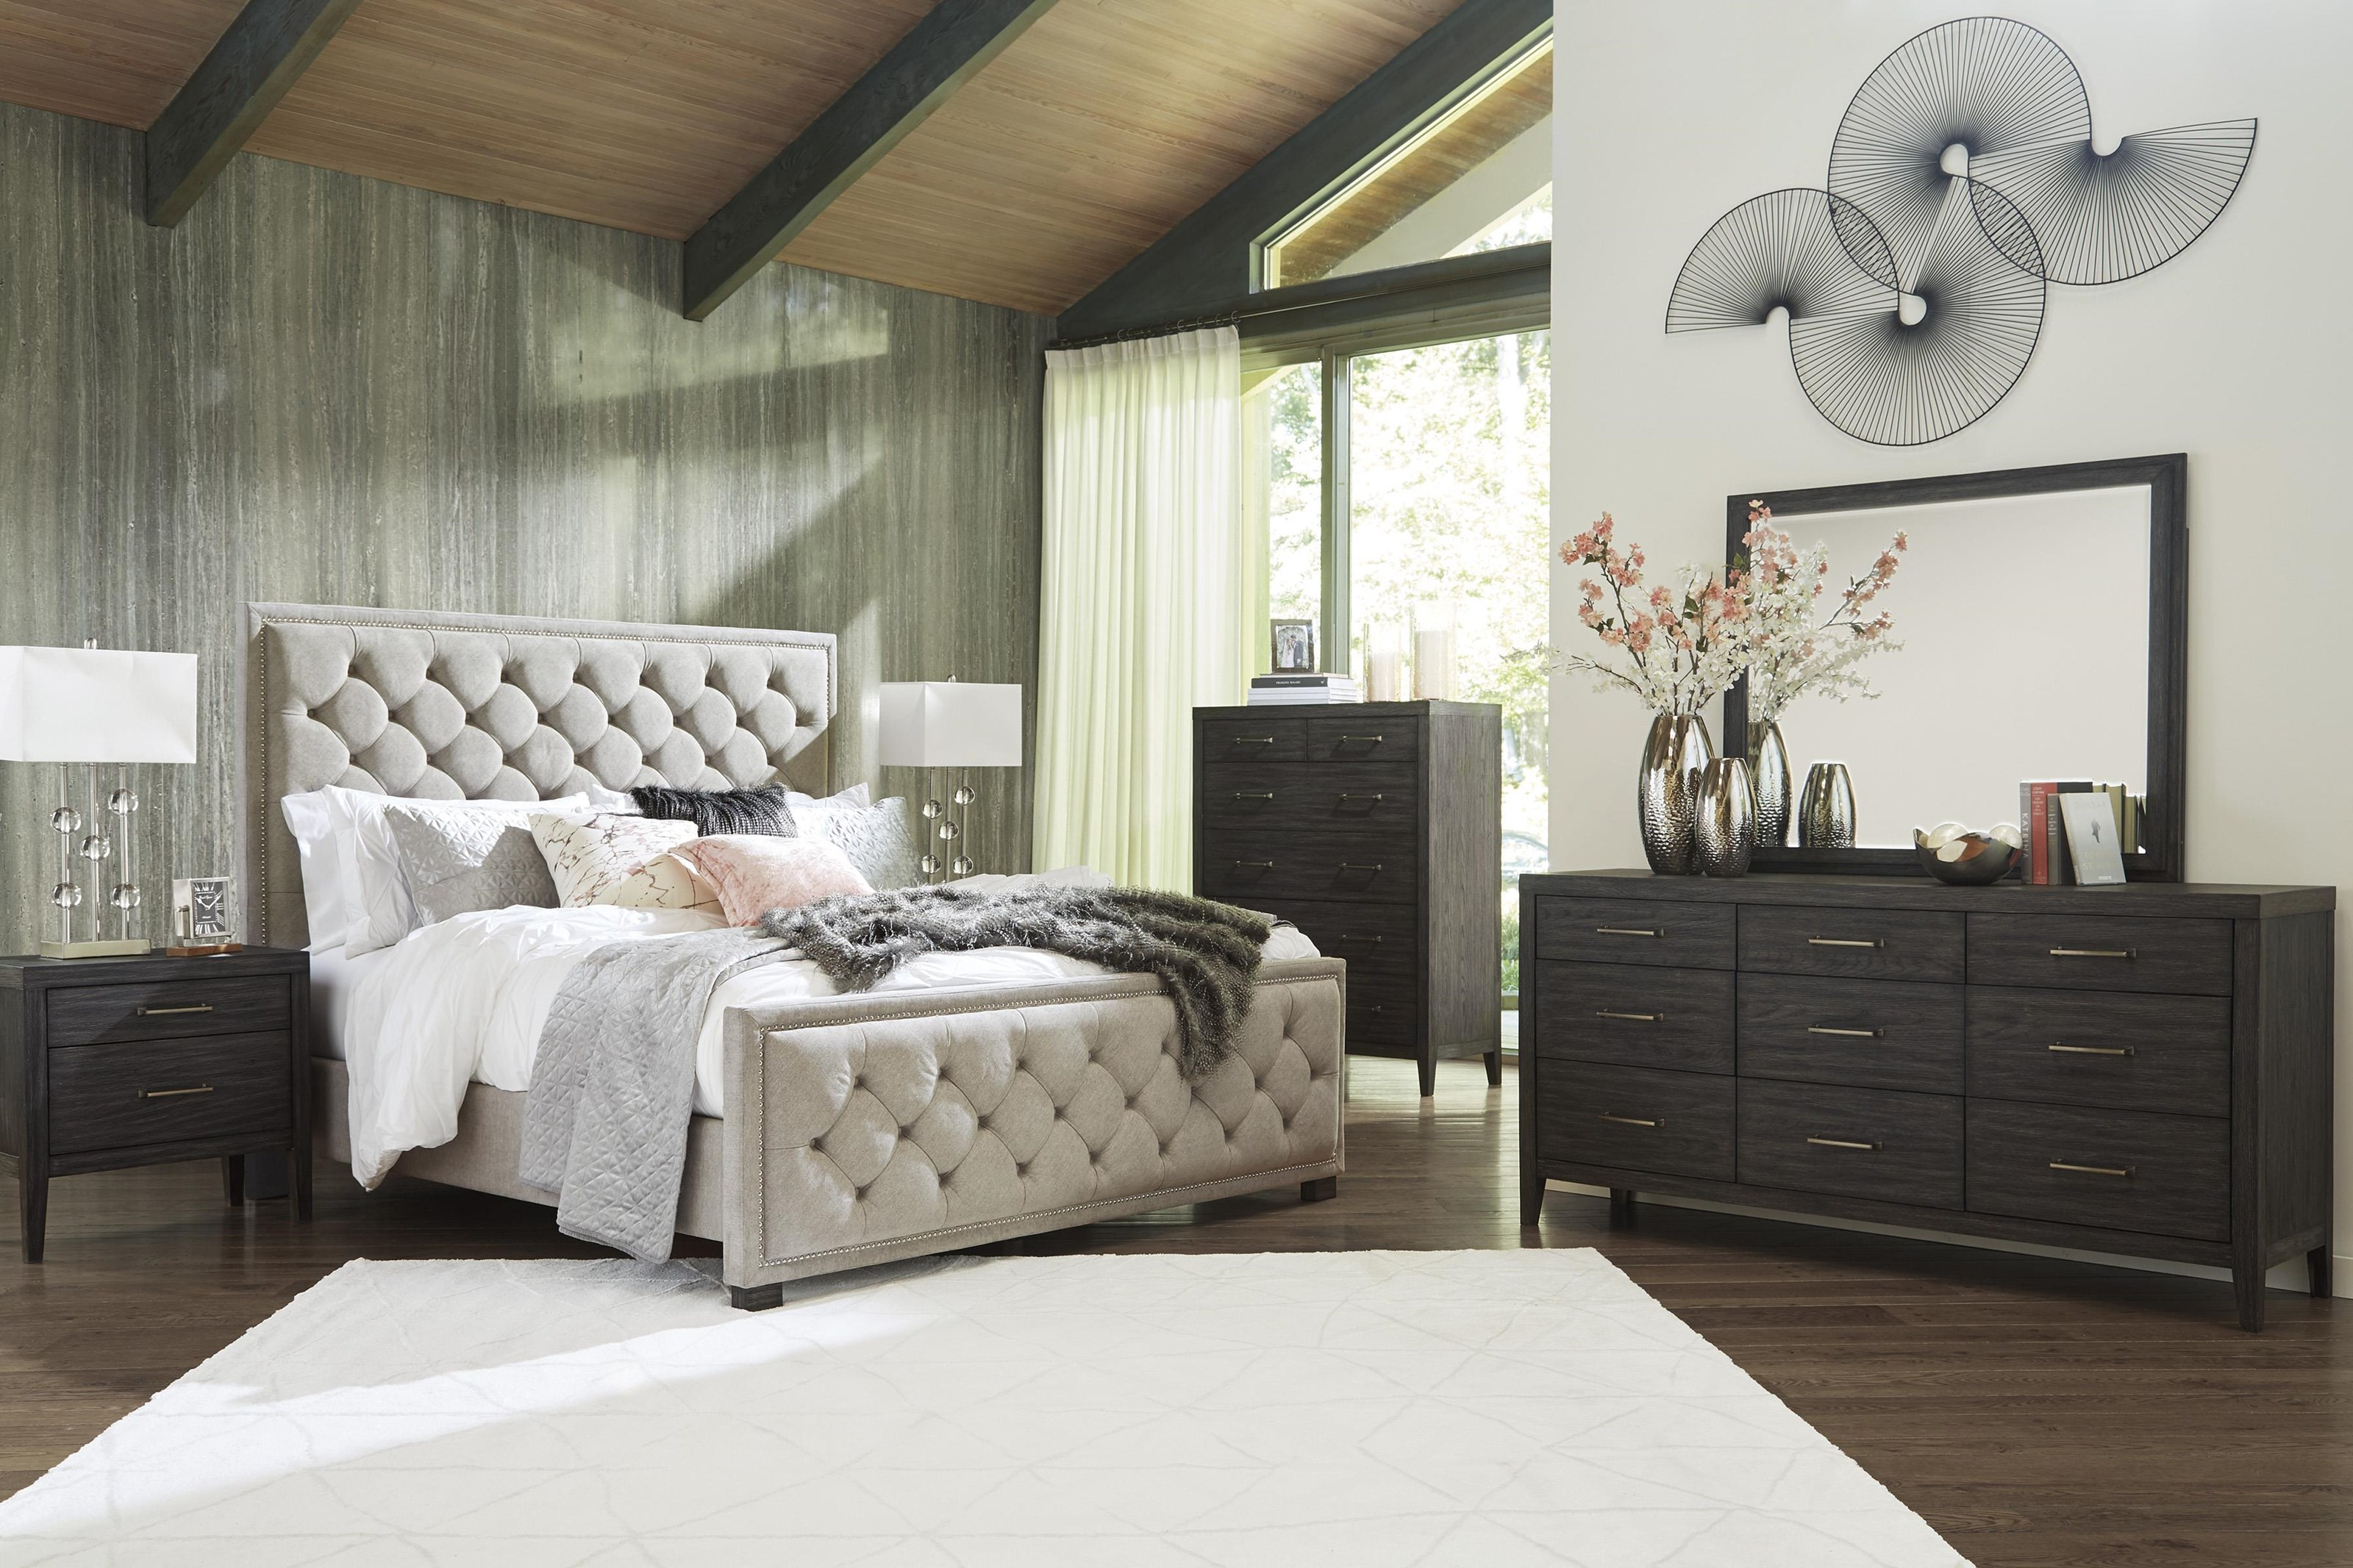 Bellvern 7 Piece Queen Upholstered Bedroom Set by Ashley Furniture at Sam Levitz Outlet